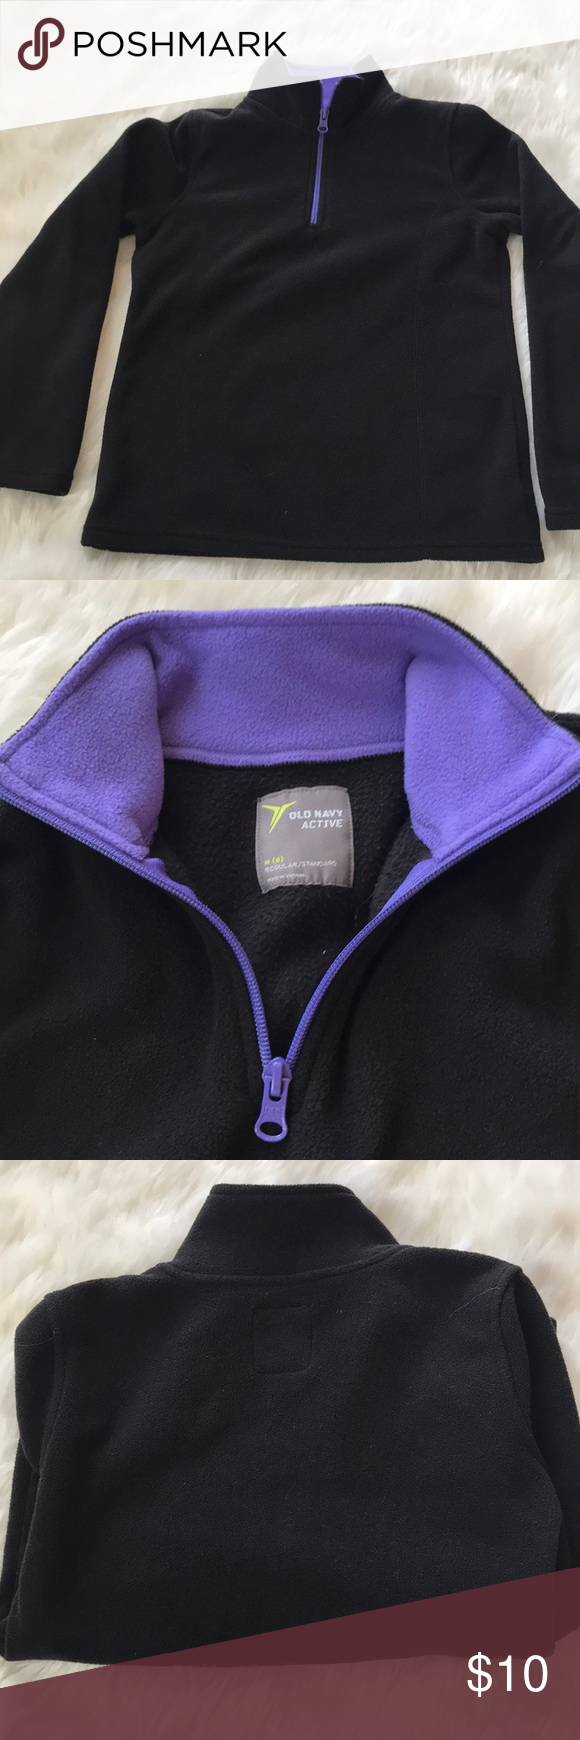 Old navy active light weight fleece sz med cute black fleece from